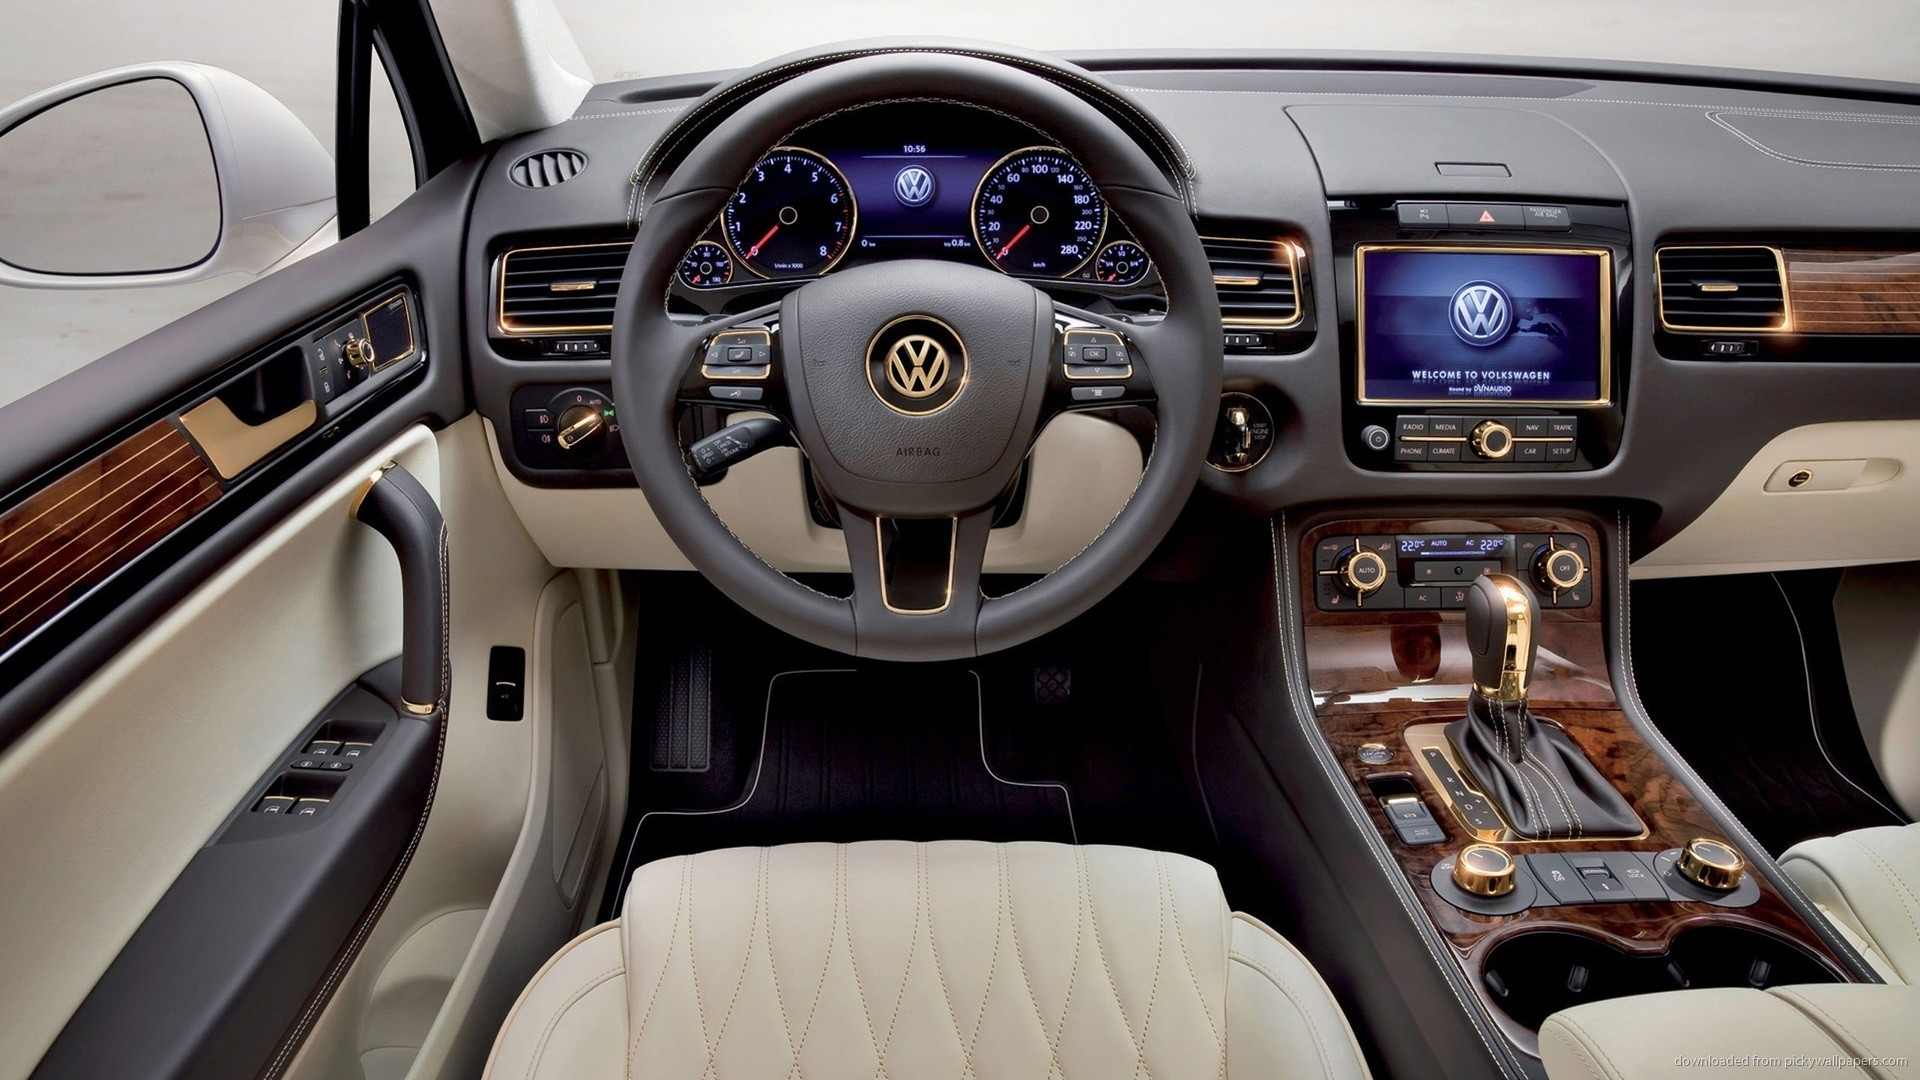 Volkswagen Touareg Gold Edition Interior Wallpaper picture